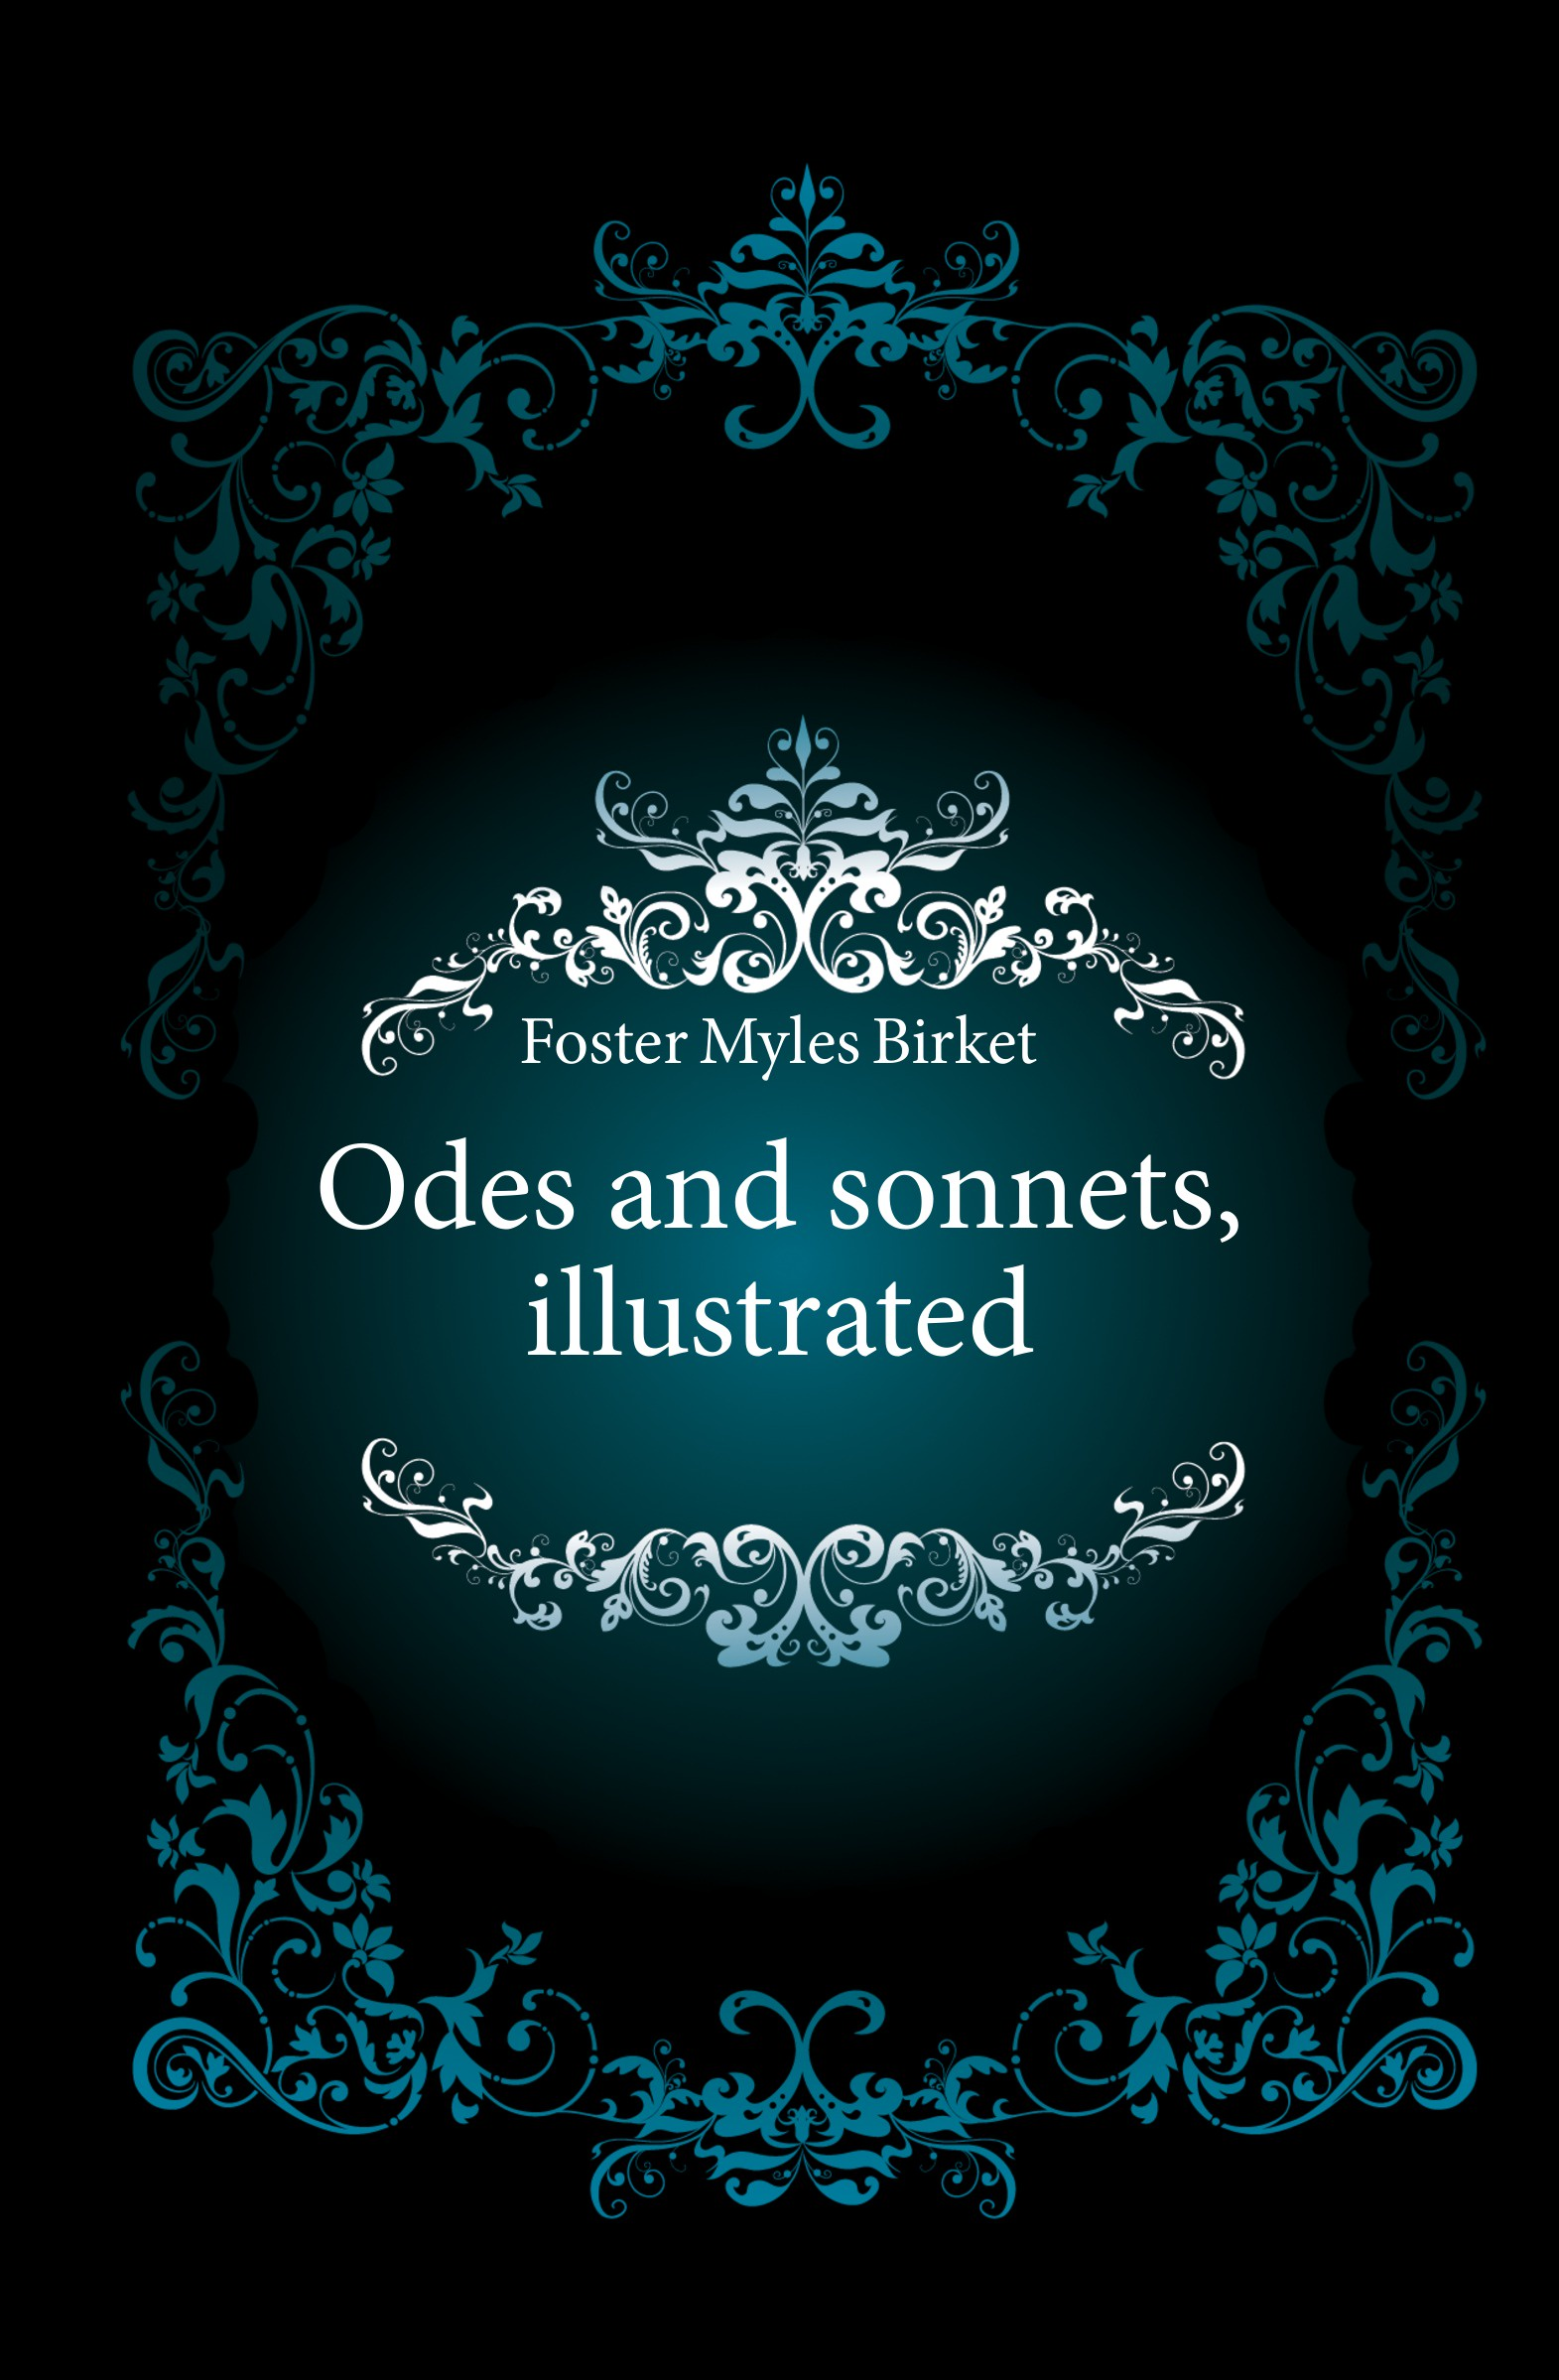 Foster Myles Birket Odes and sonnets, illustrated